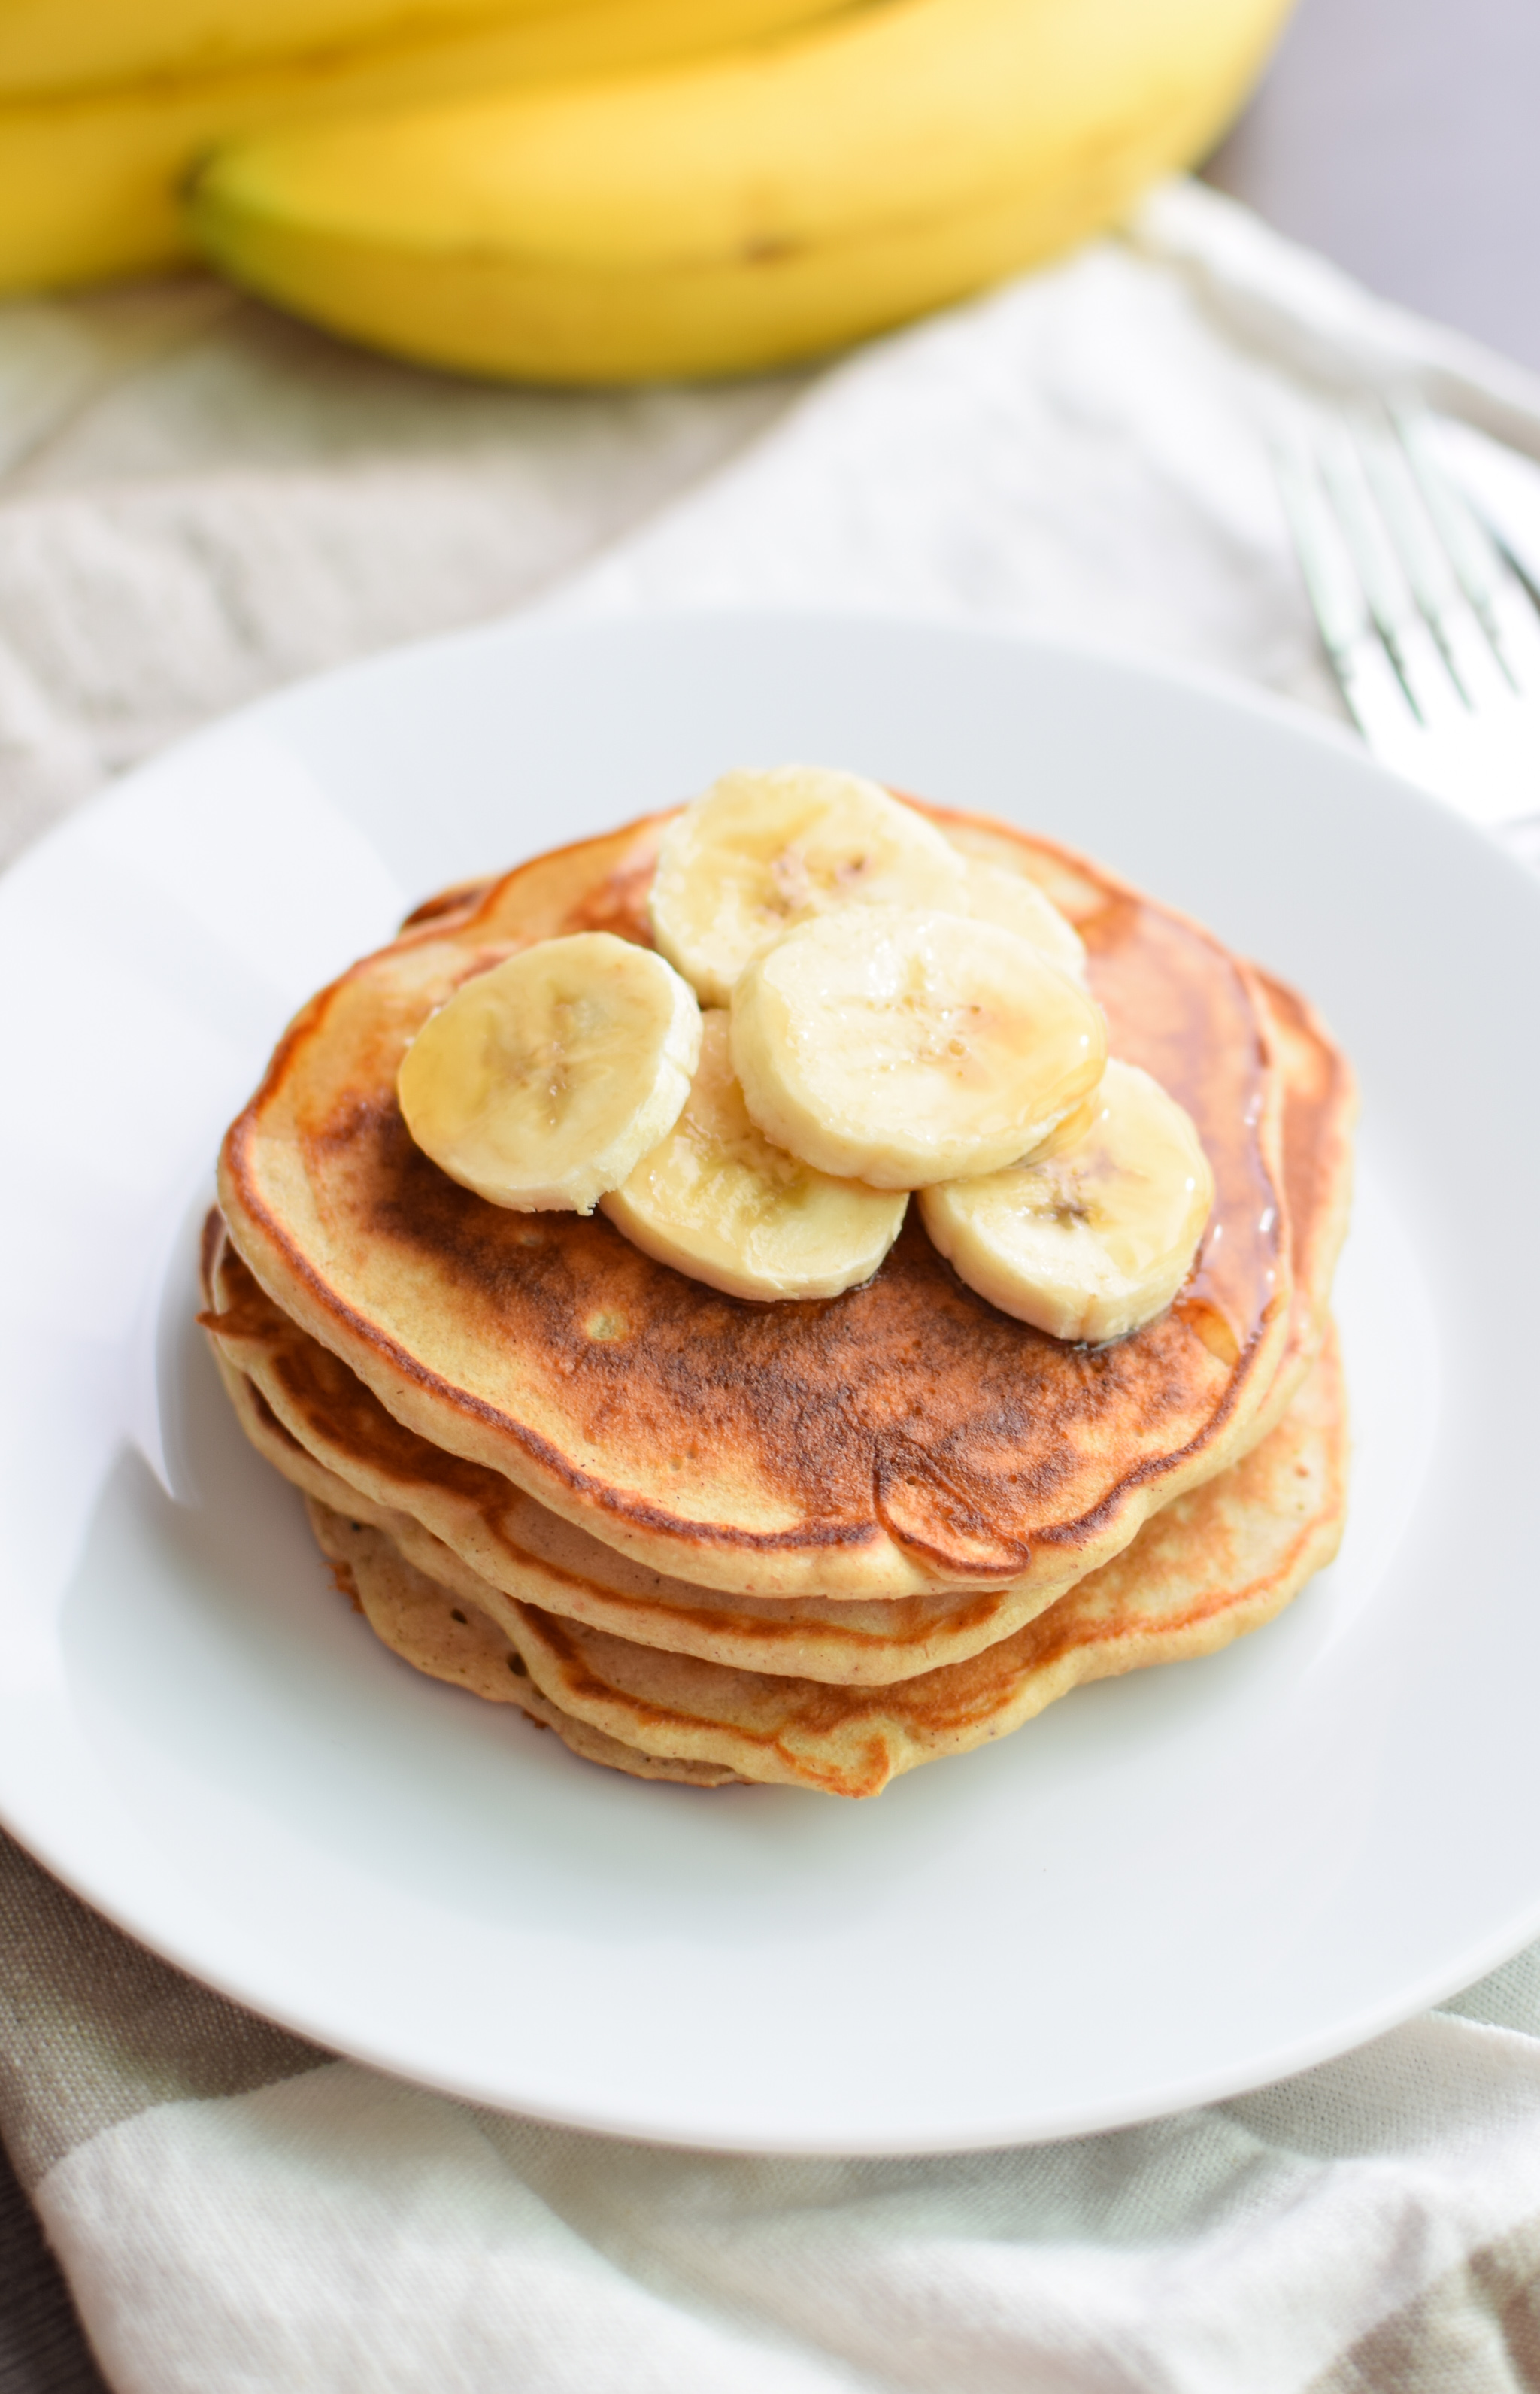 Banana Protein Pancakes Recipe - Delicious, healthy way to eat cake for breakfast! With a little extra protein :) - ProjectMealPlan.com